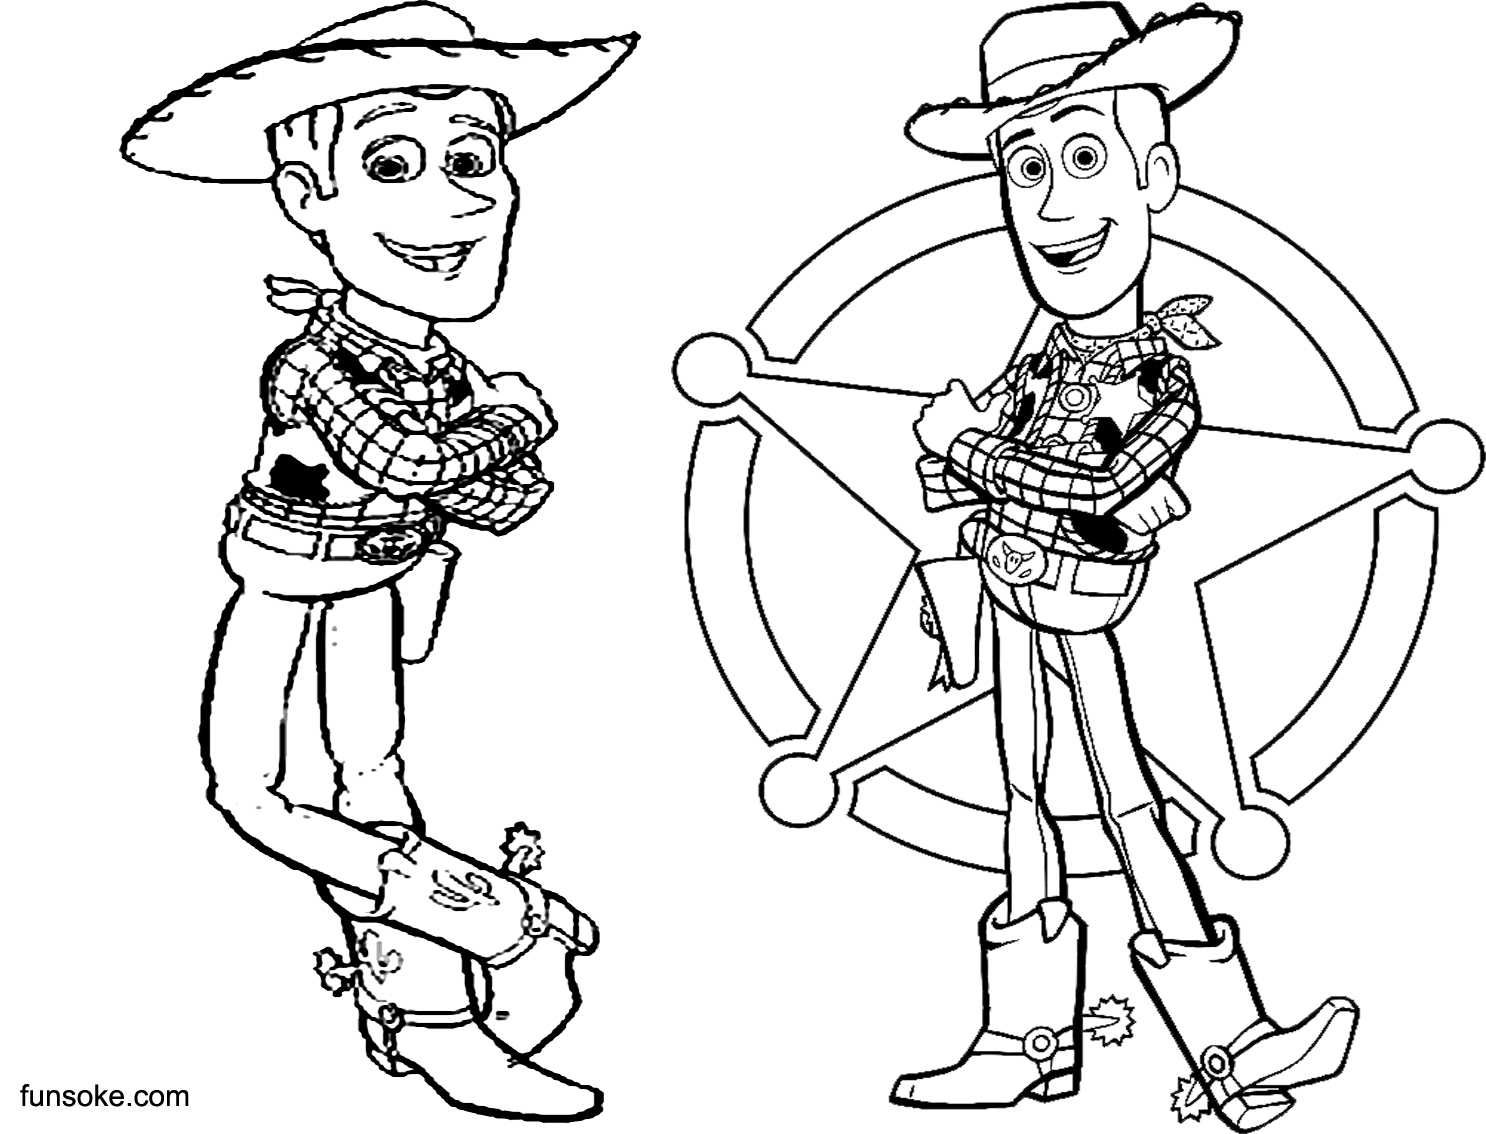 toy story coloring toy story printable coloring pages disney coloring book story toy coloring